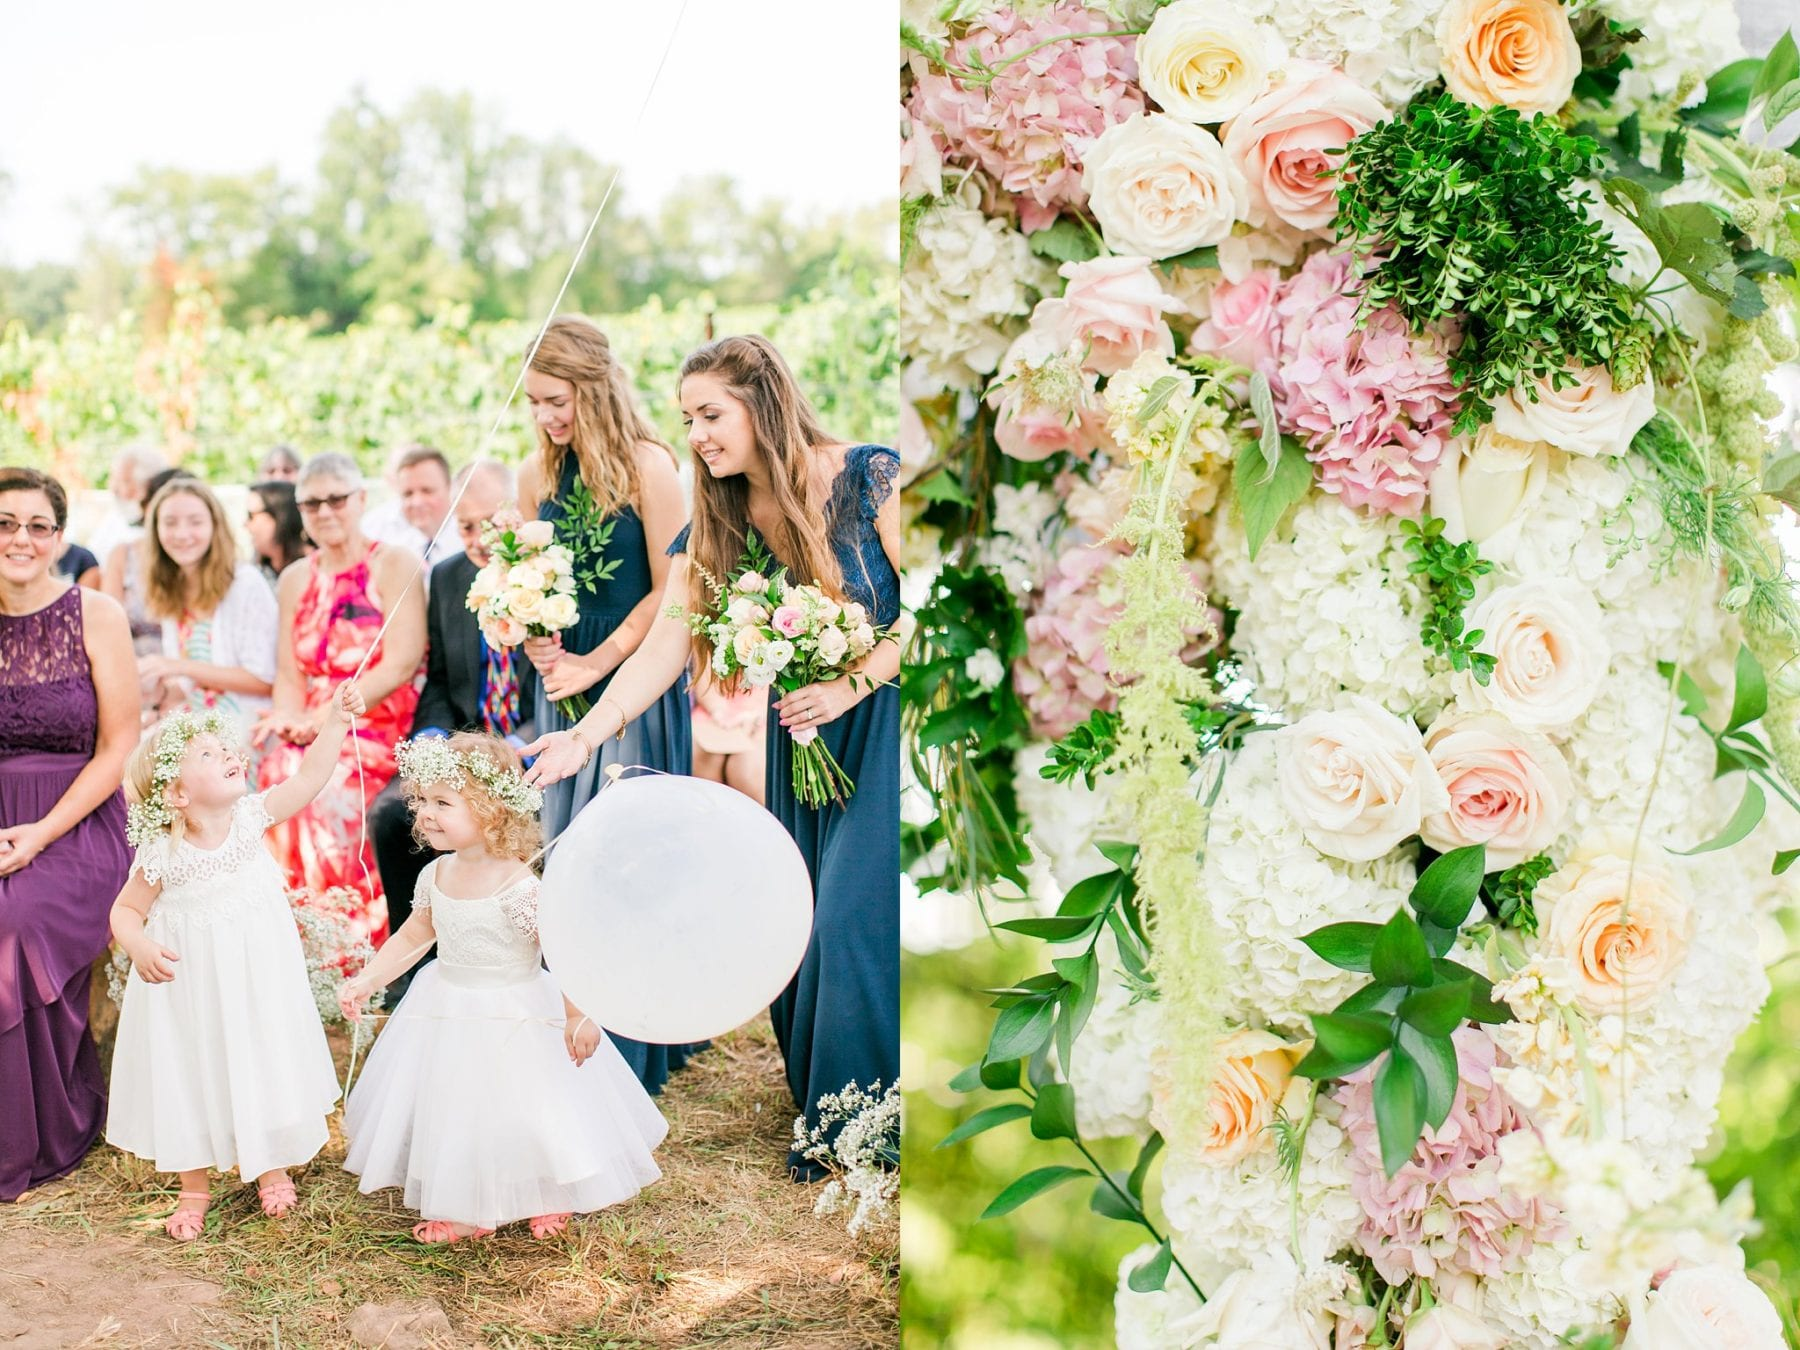 Rocklands Farm Wedding Virginia Wedding Photographer Megan Kelsey Photography Jessica & Jason-86.jpg